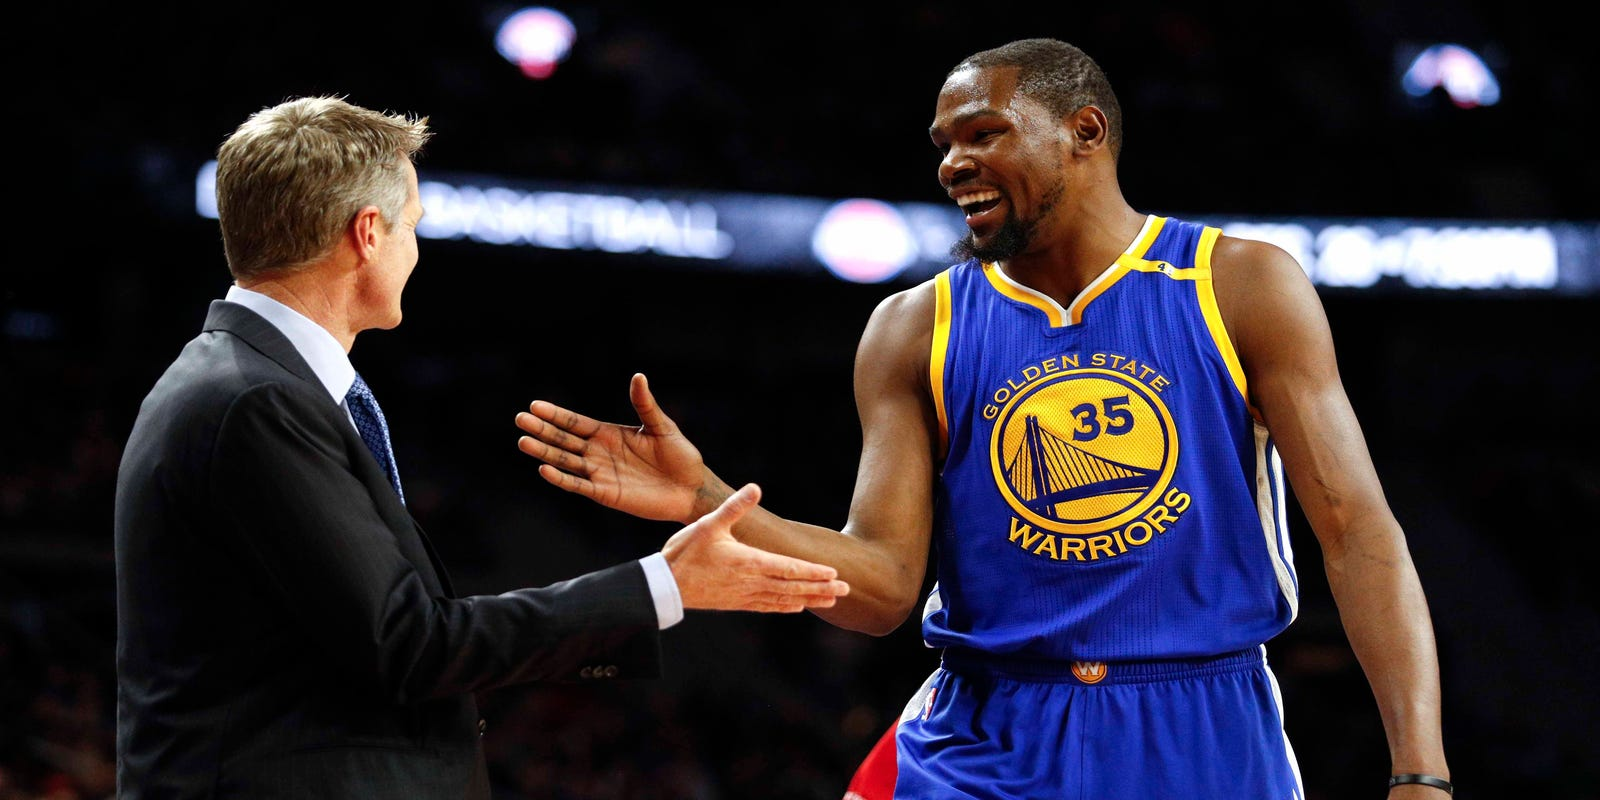 dff07dd8b Kevin Durant of Warriors to lead clinic